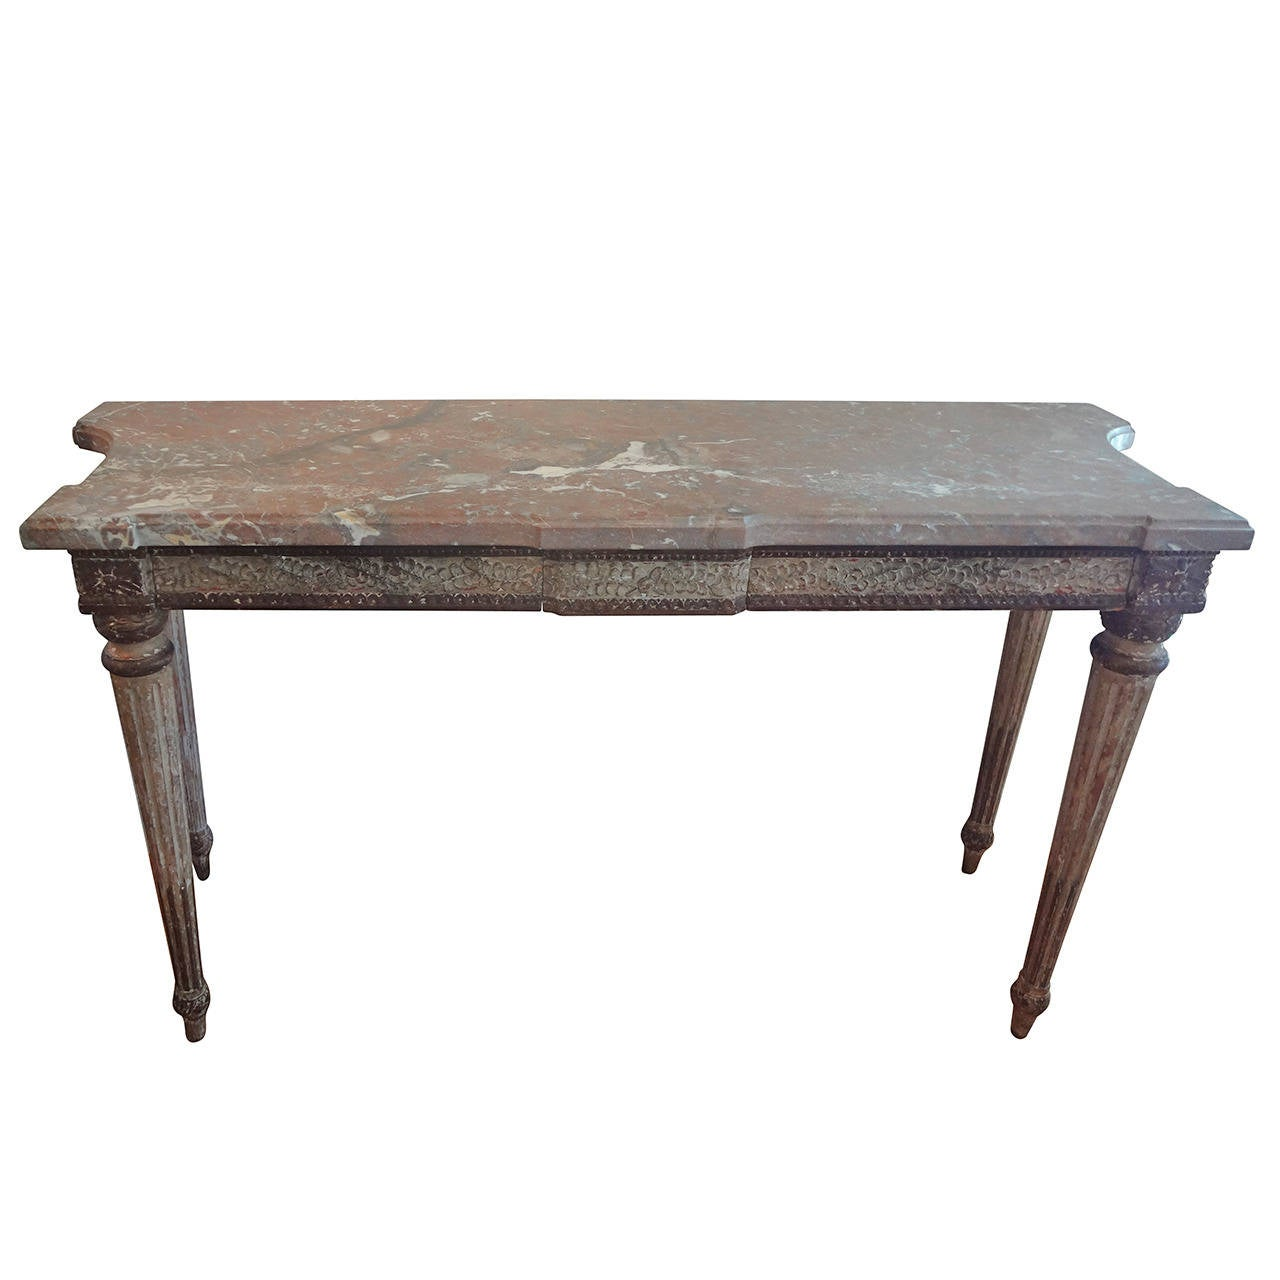 19th century italian louis xvi style console table at 1stdibs. Black Bedroom Furniture Sets. Home Design Ideas